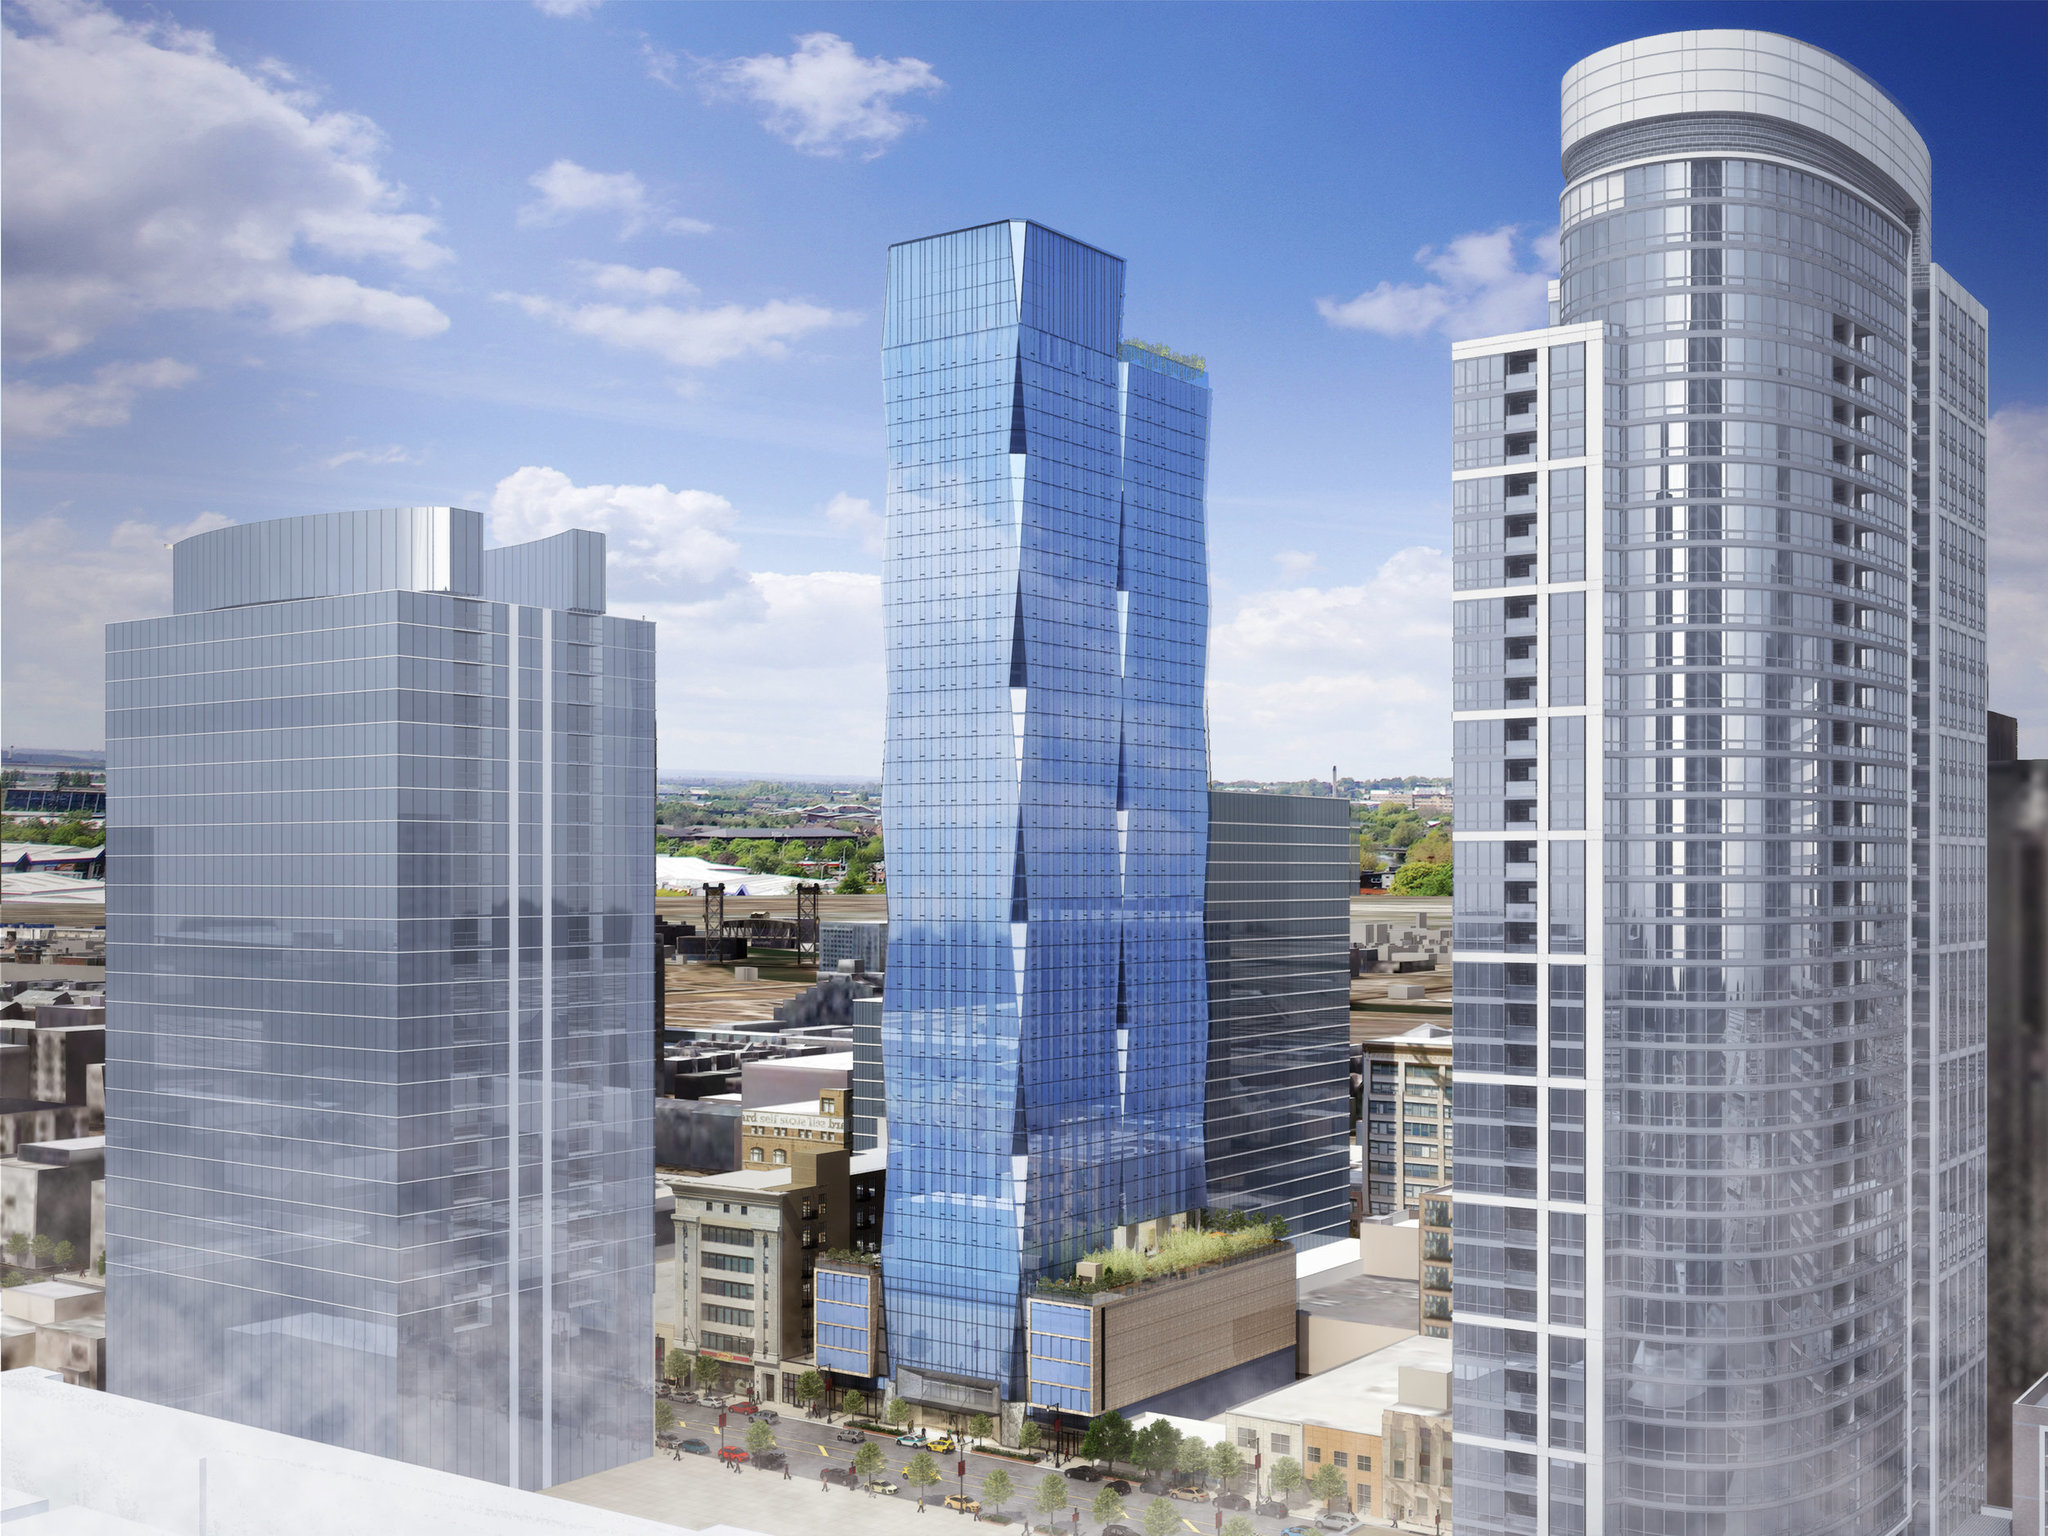 South Loop S Building Boom A Look At 3 Residential Towers Set To Open Soon Chicago Tribune